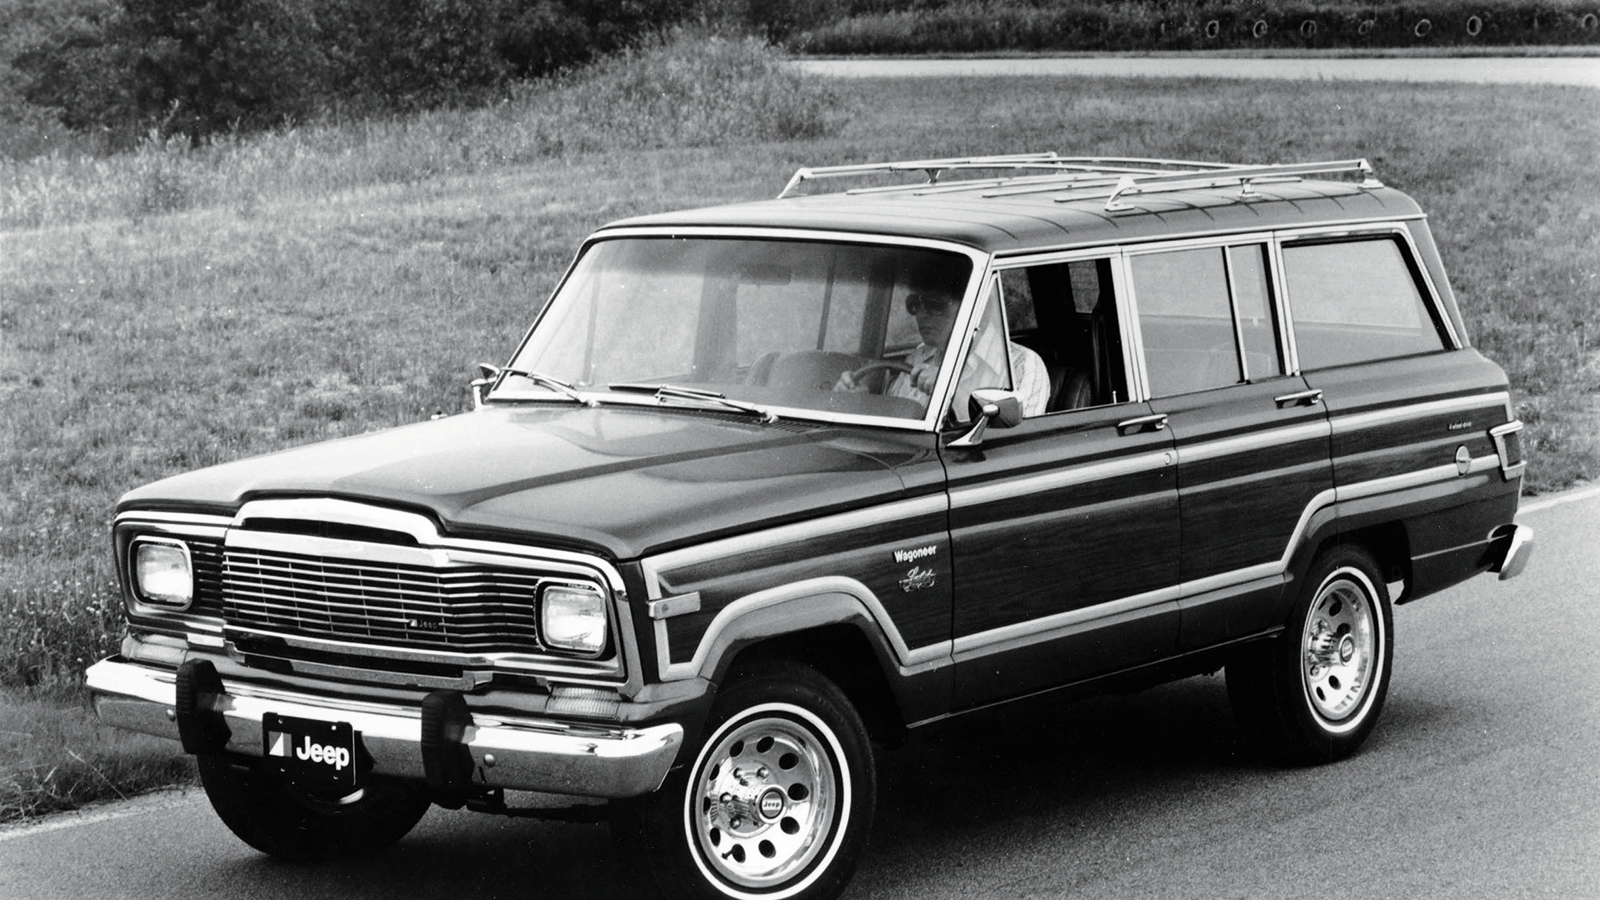 20 of the best 4x4 classics